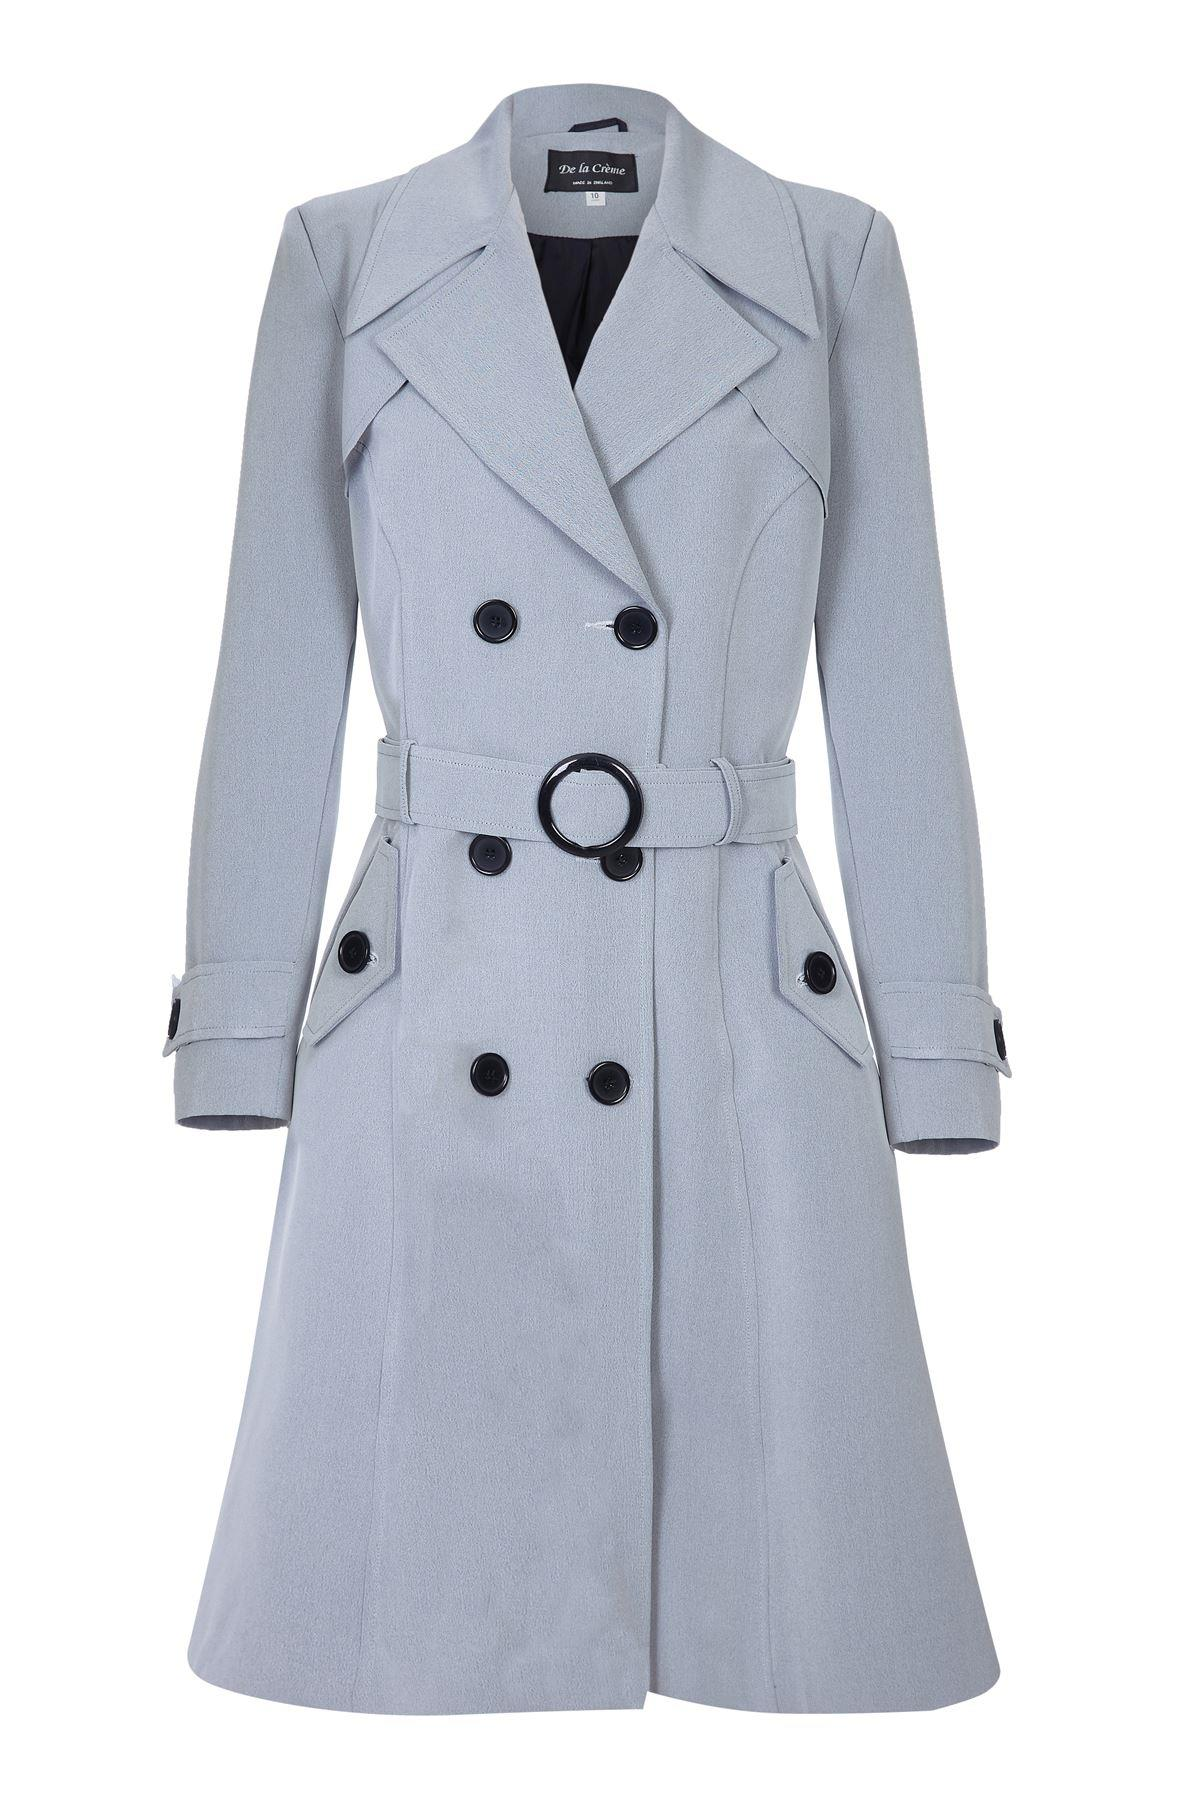 De La Creme- Women's Spring Belted Trench Coat